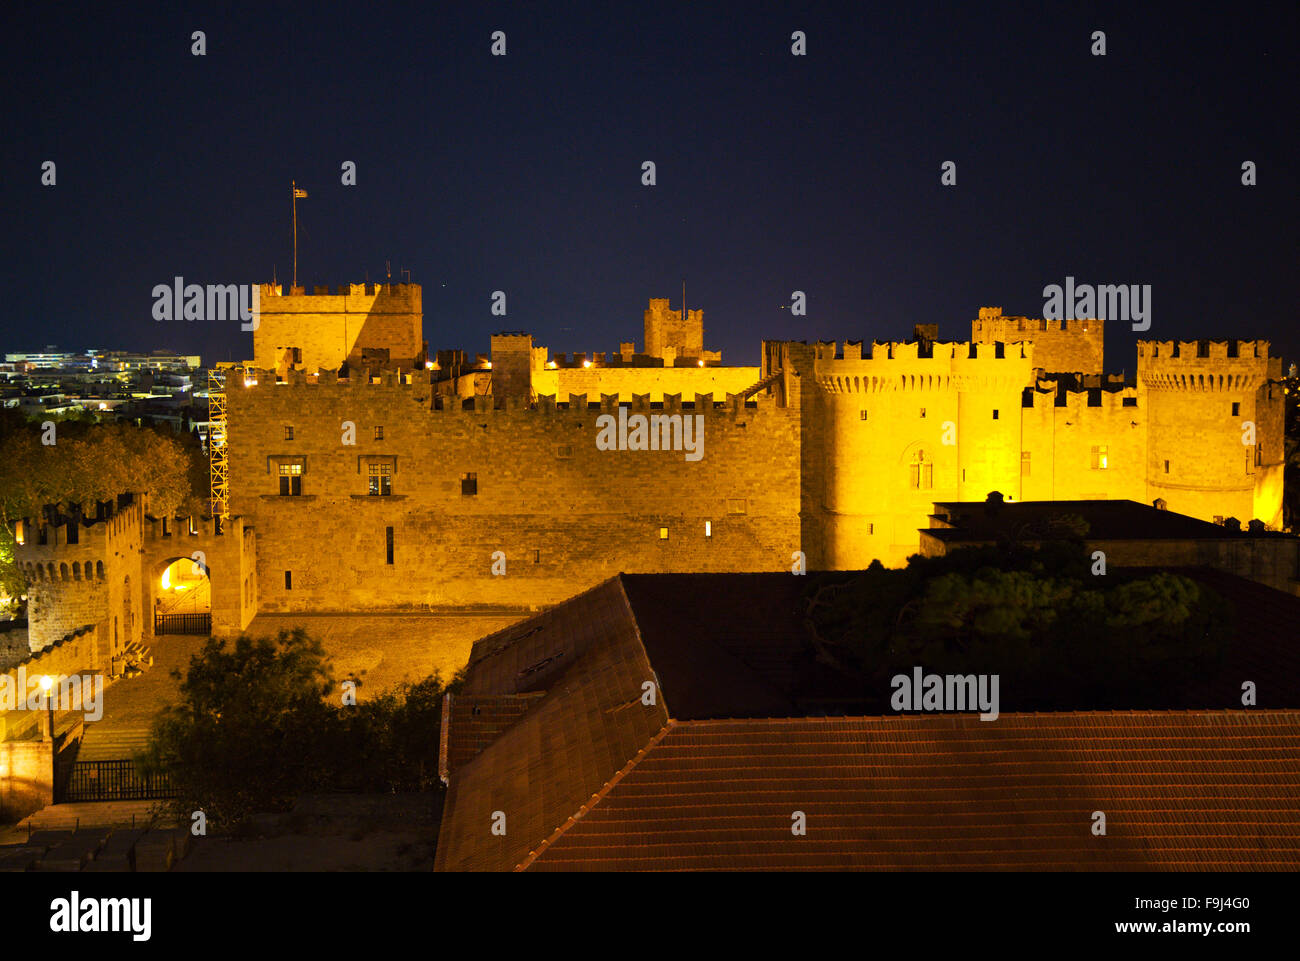 Castle in Rhodos at night - Stock Image